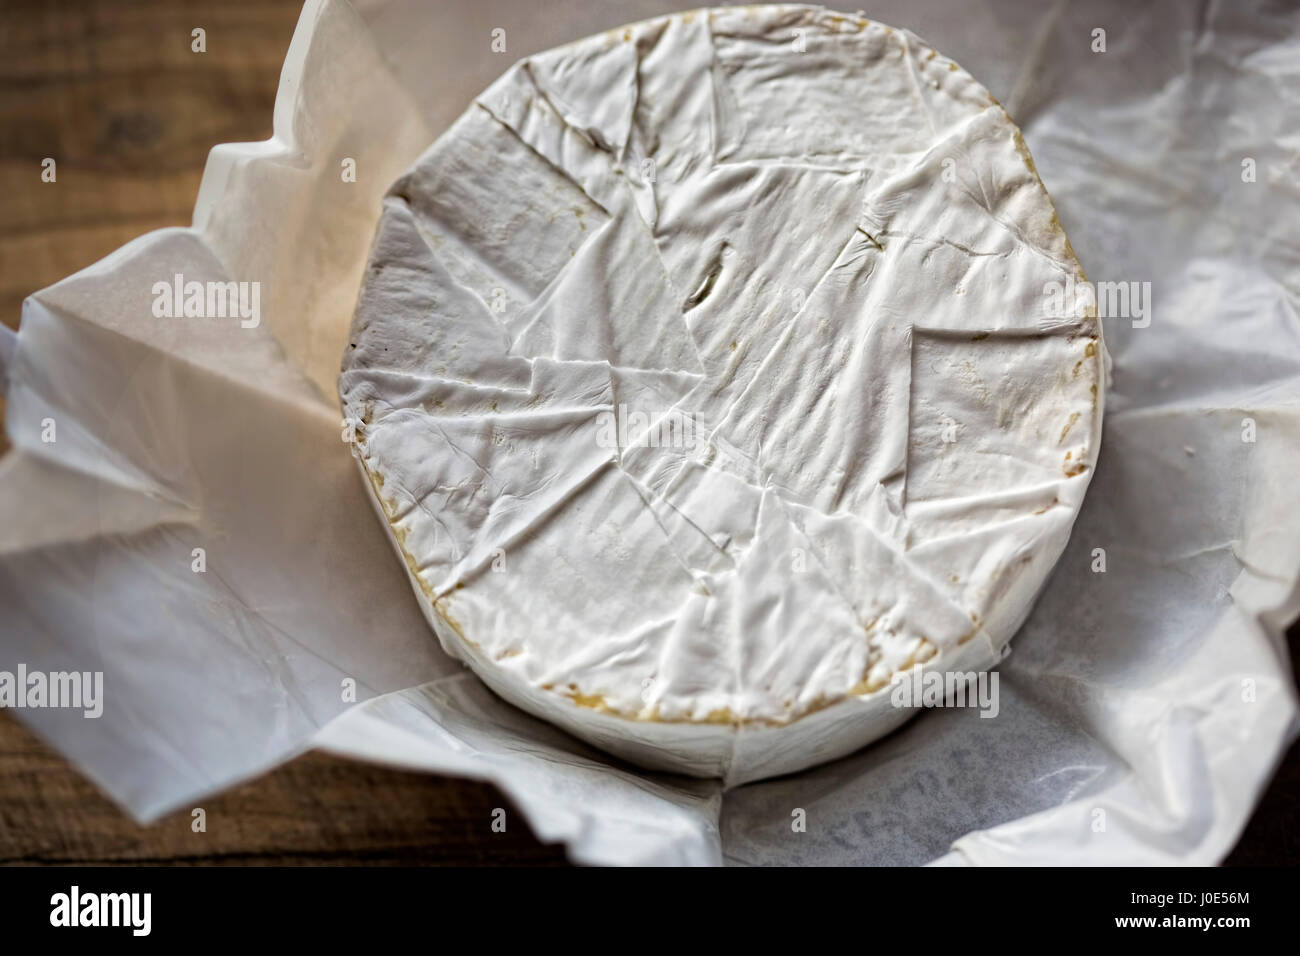 Brie cheese on wooden board - Stock Image